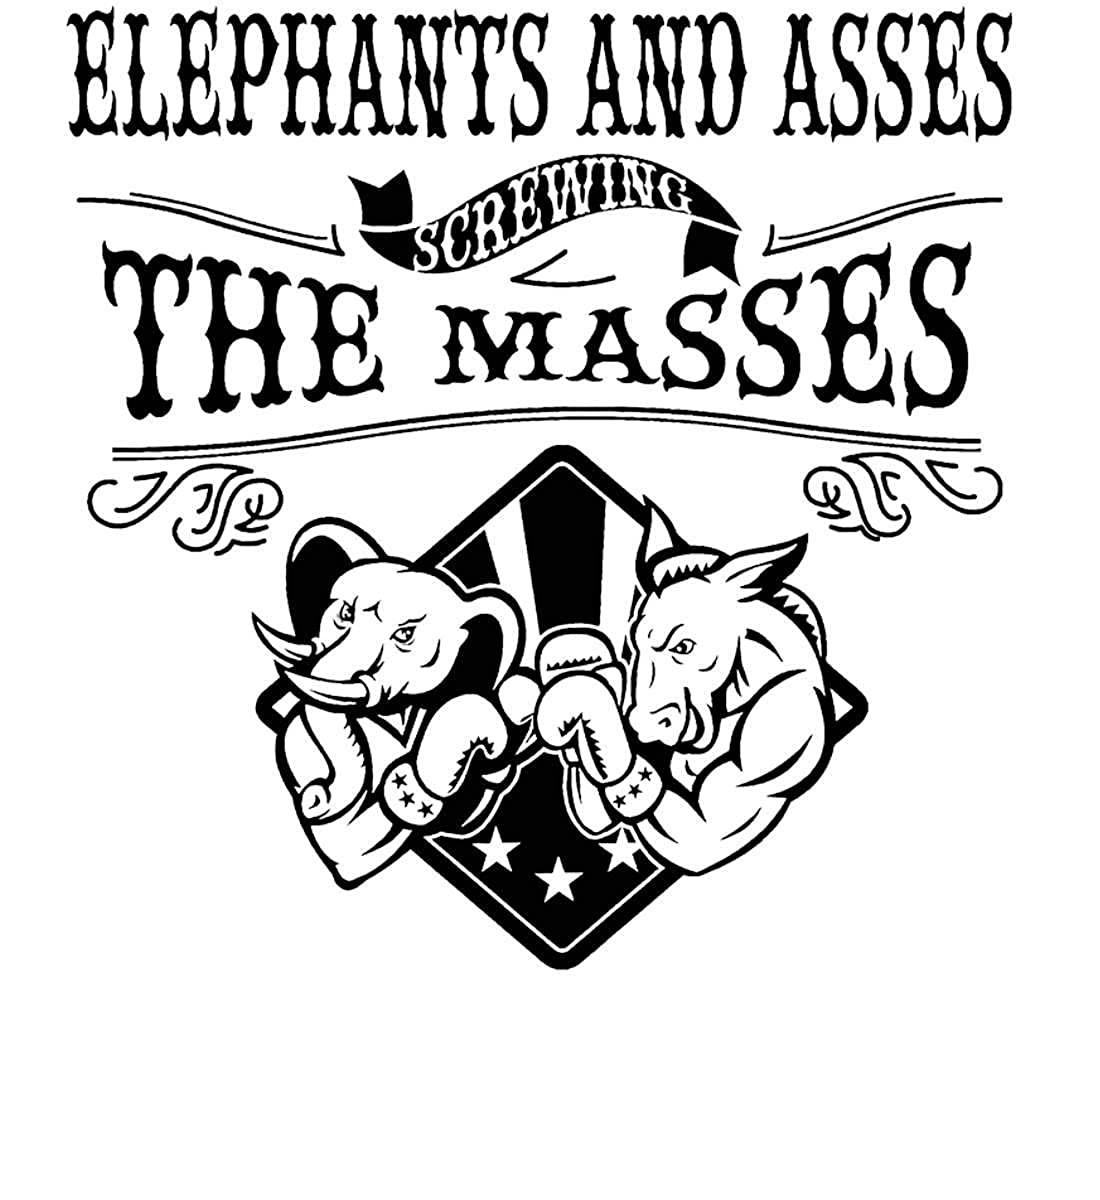 Sons Of Liberty Elephants and assess screwing The Masses Long Sleeve Shirt